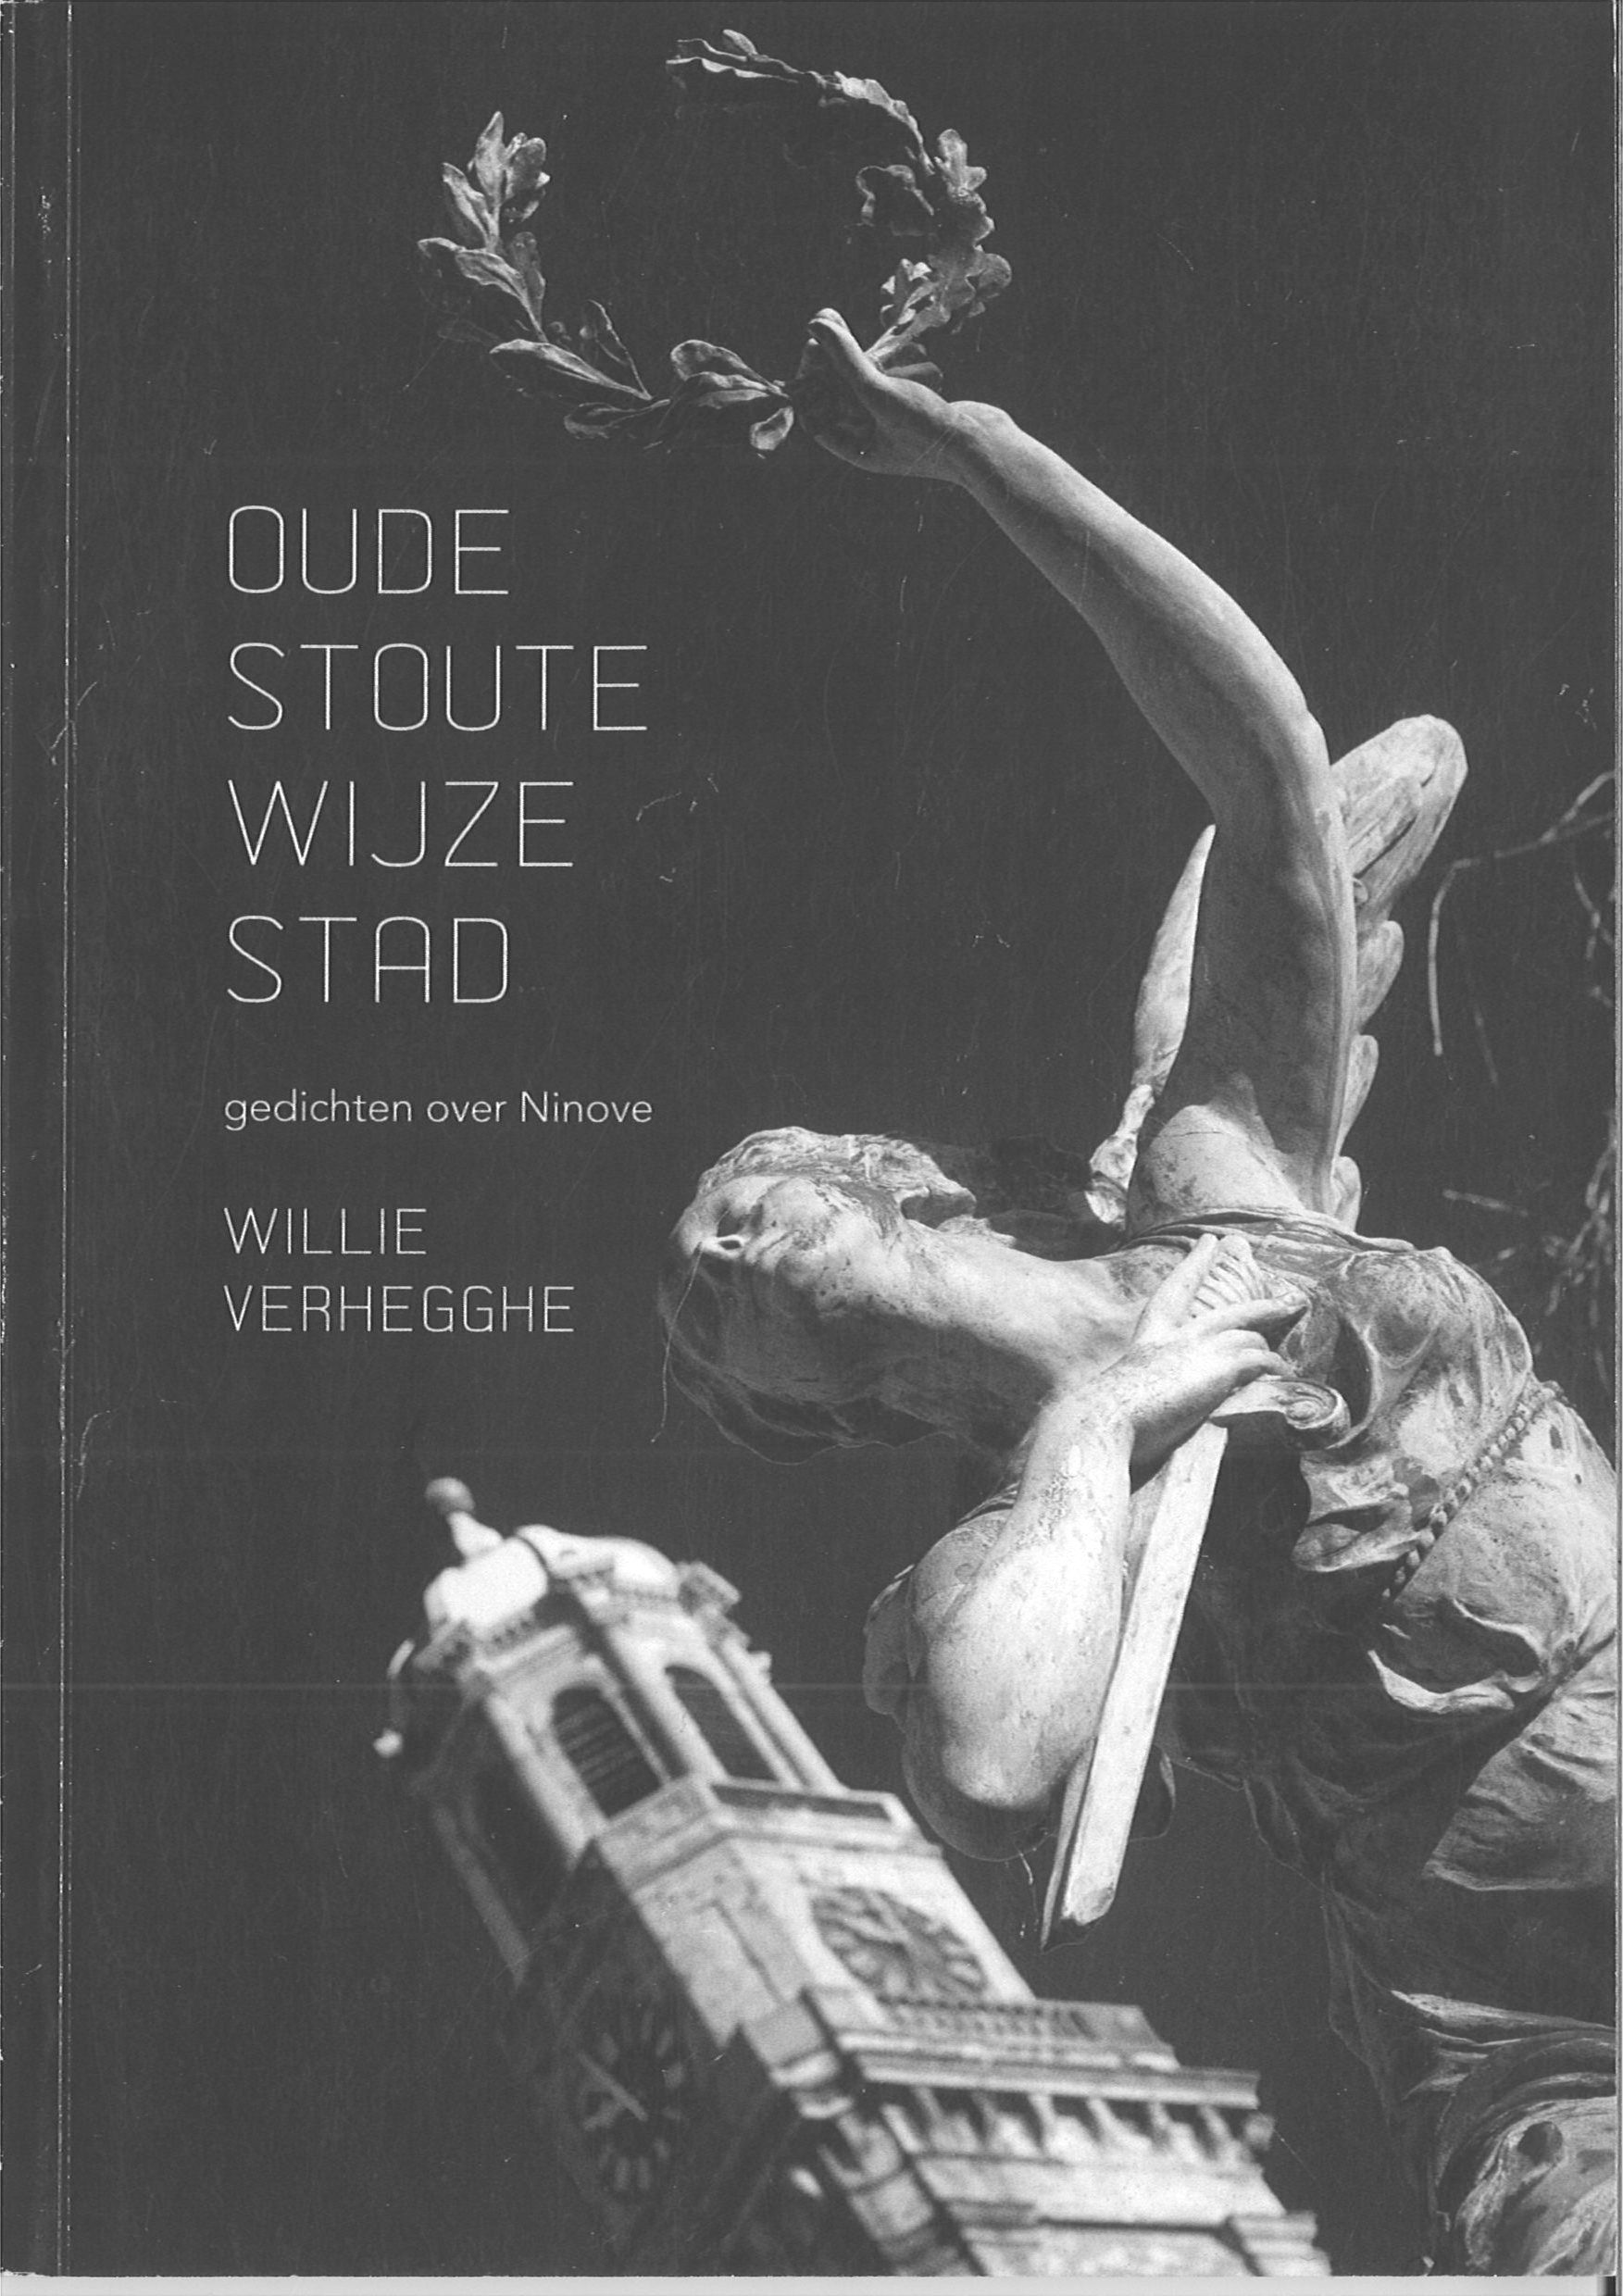 Oude stoute wijze stad